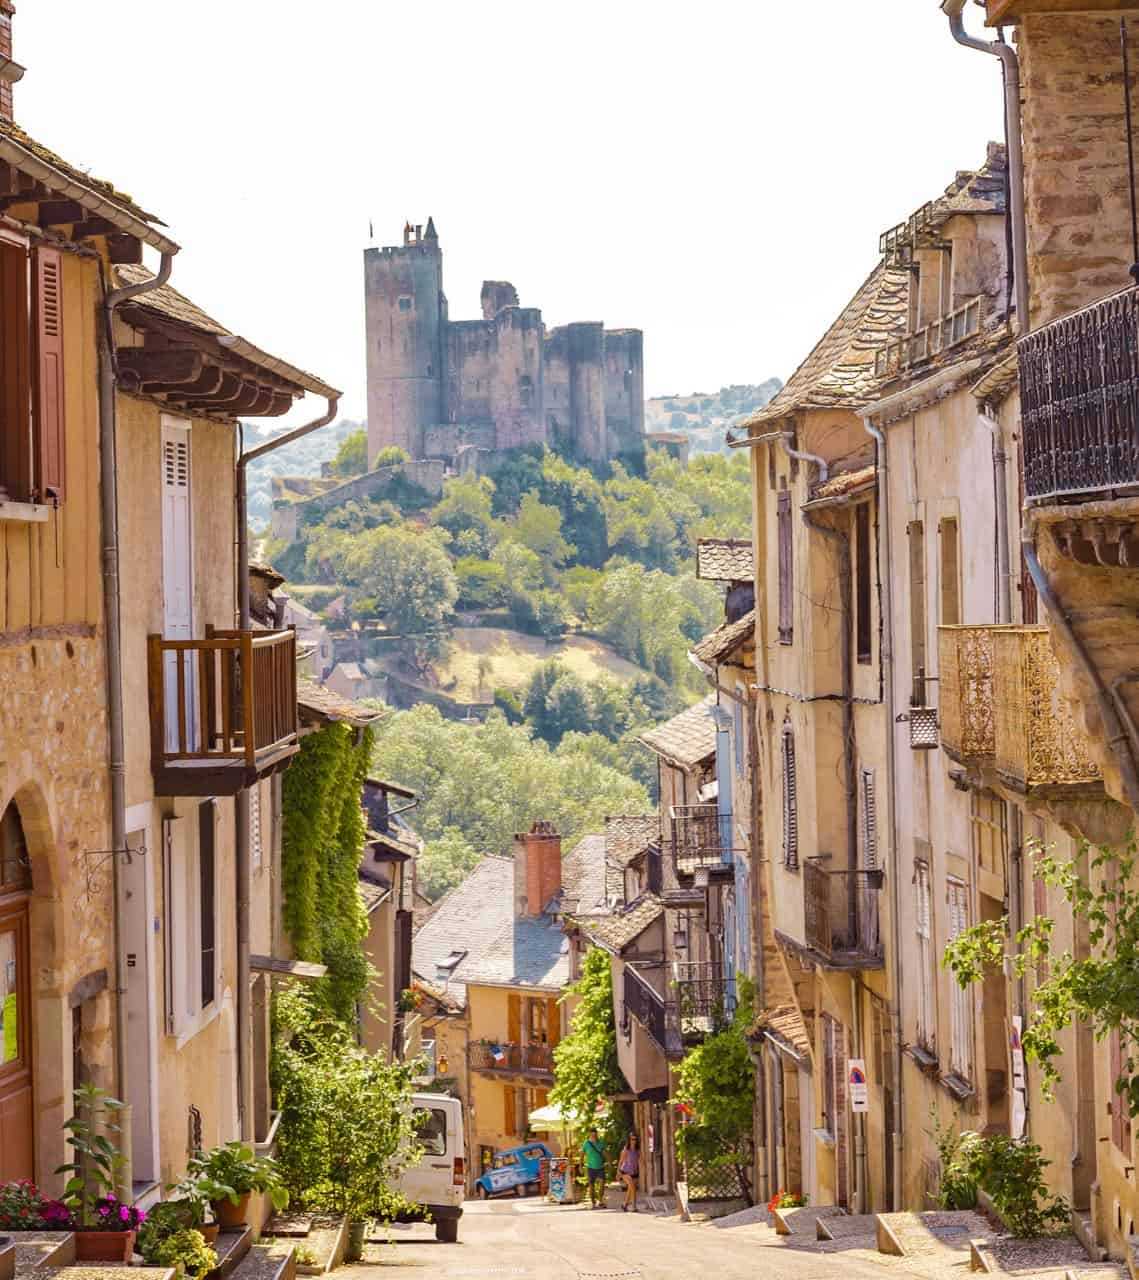 southwest France town called Najac with a castle in the distance